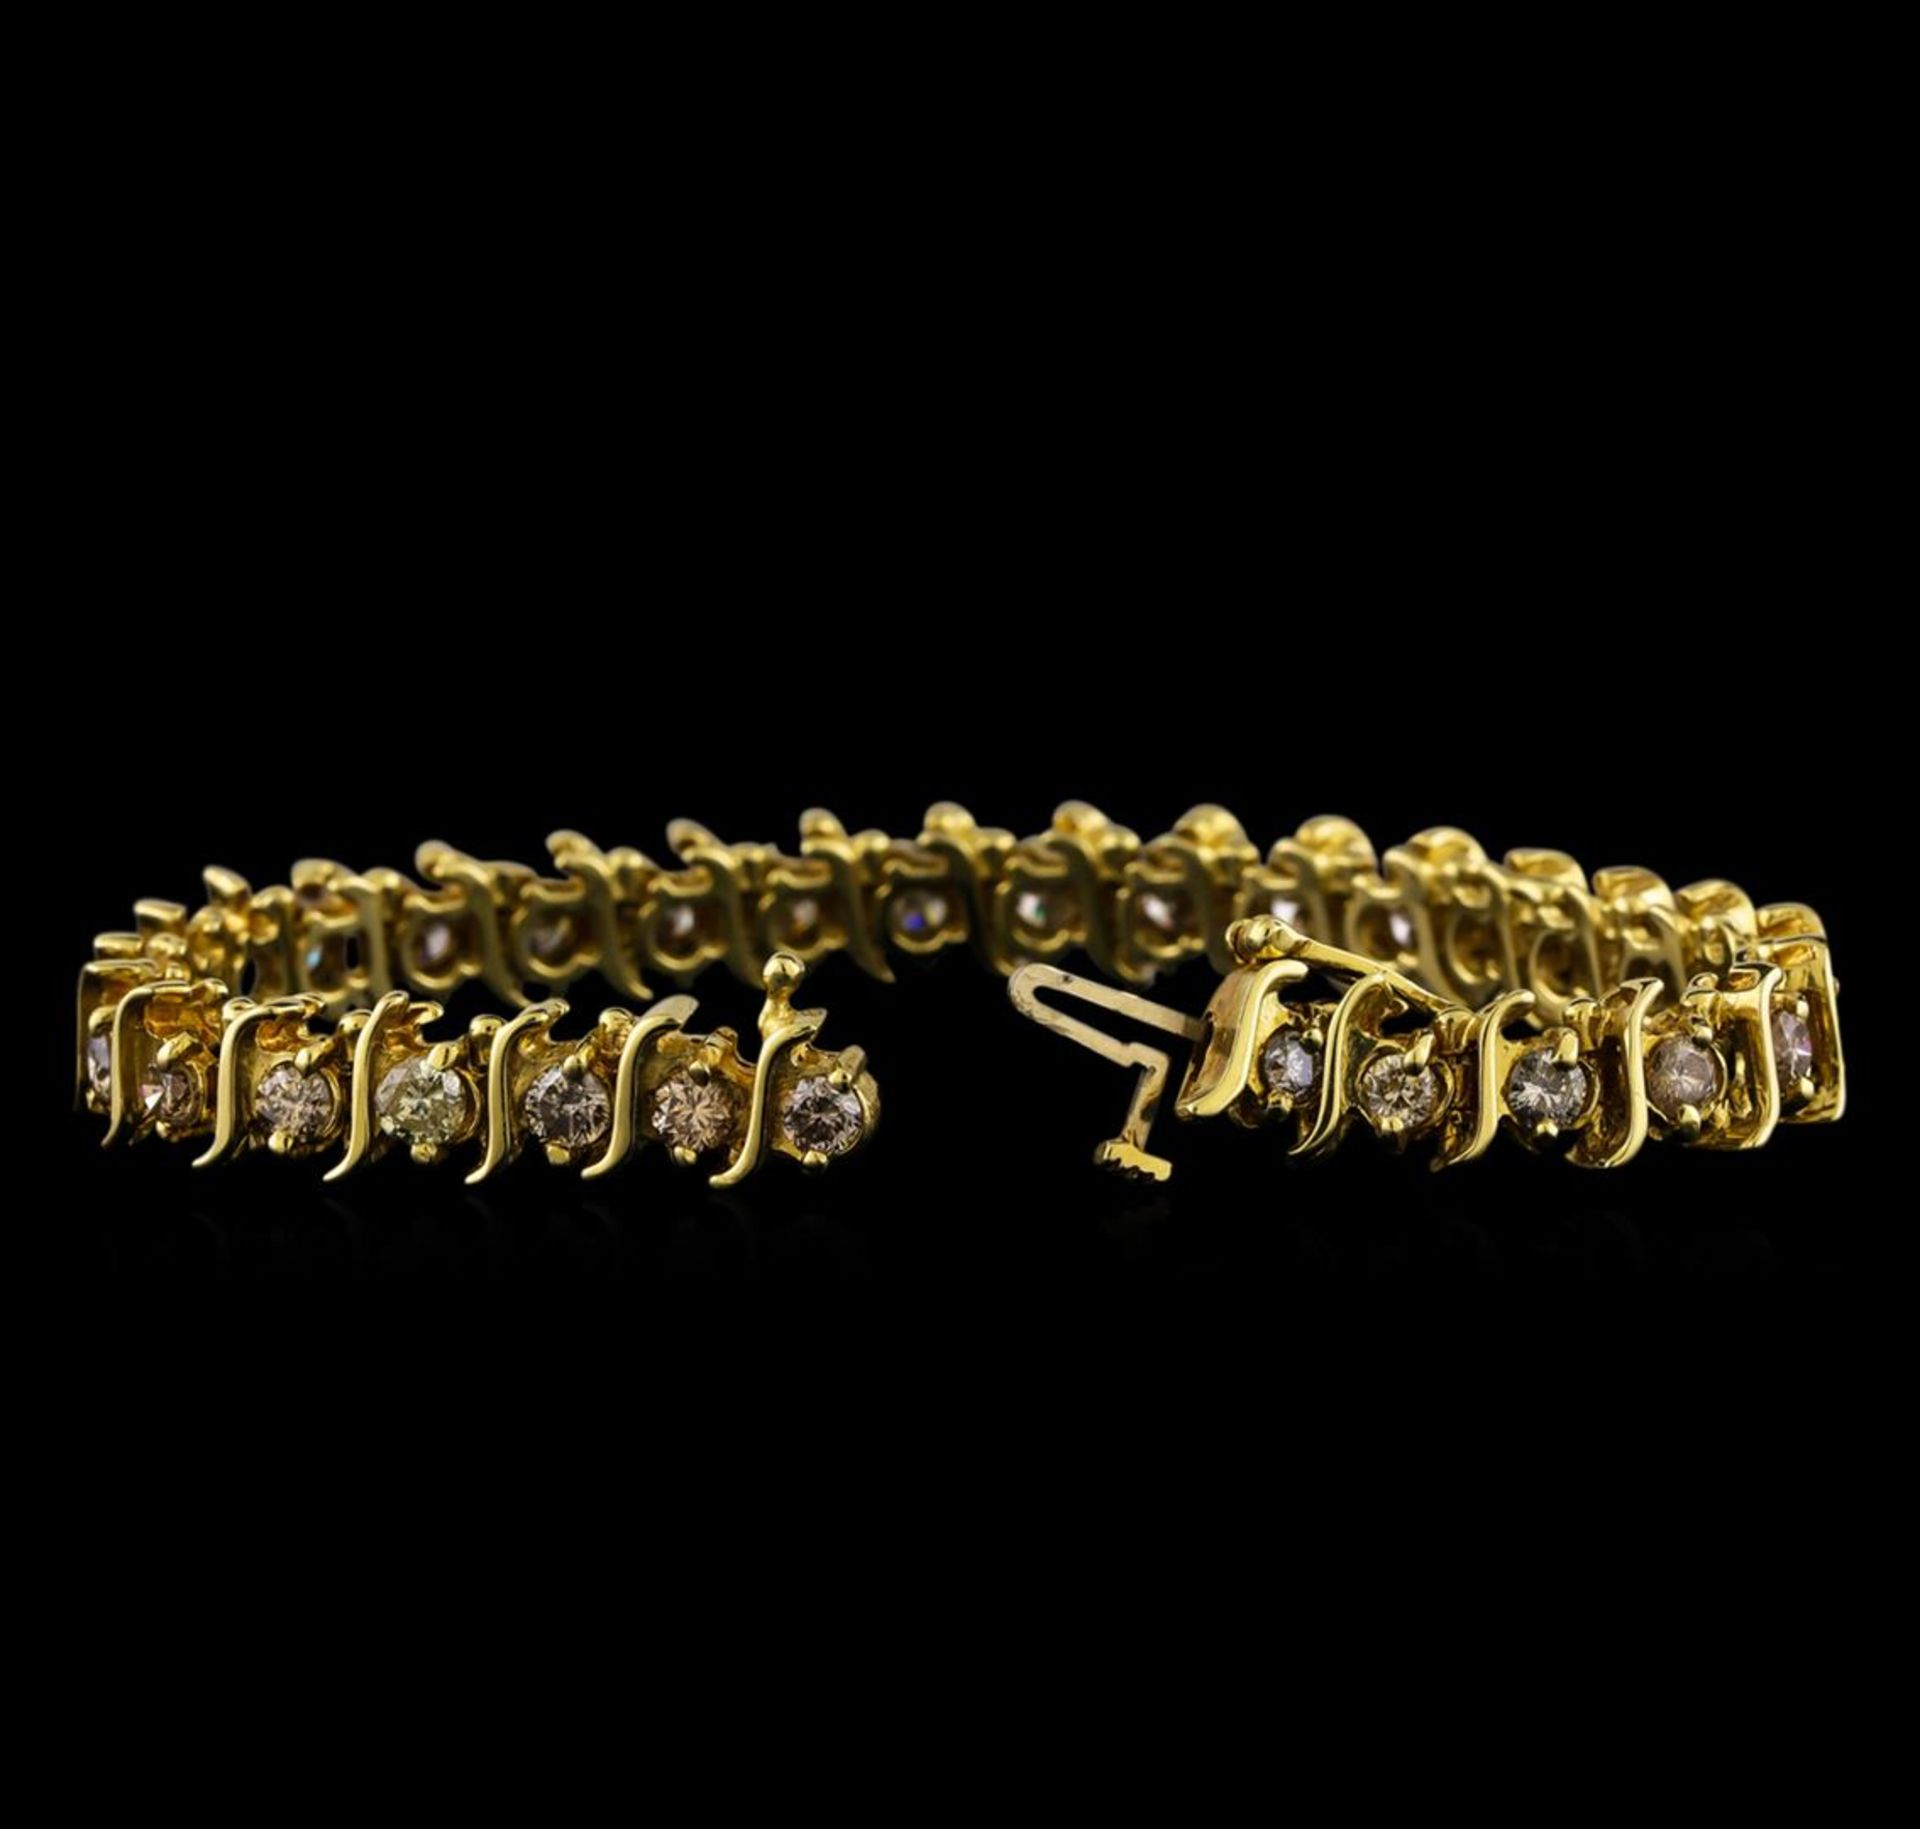 4.85 ctw Diamond Bracelet - 14KT Yellow Gold - Image 3 of 4